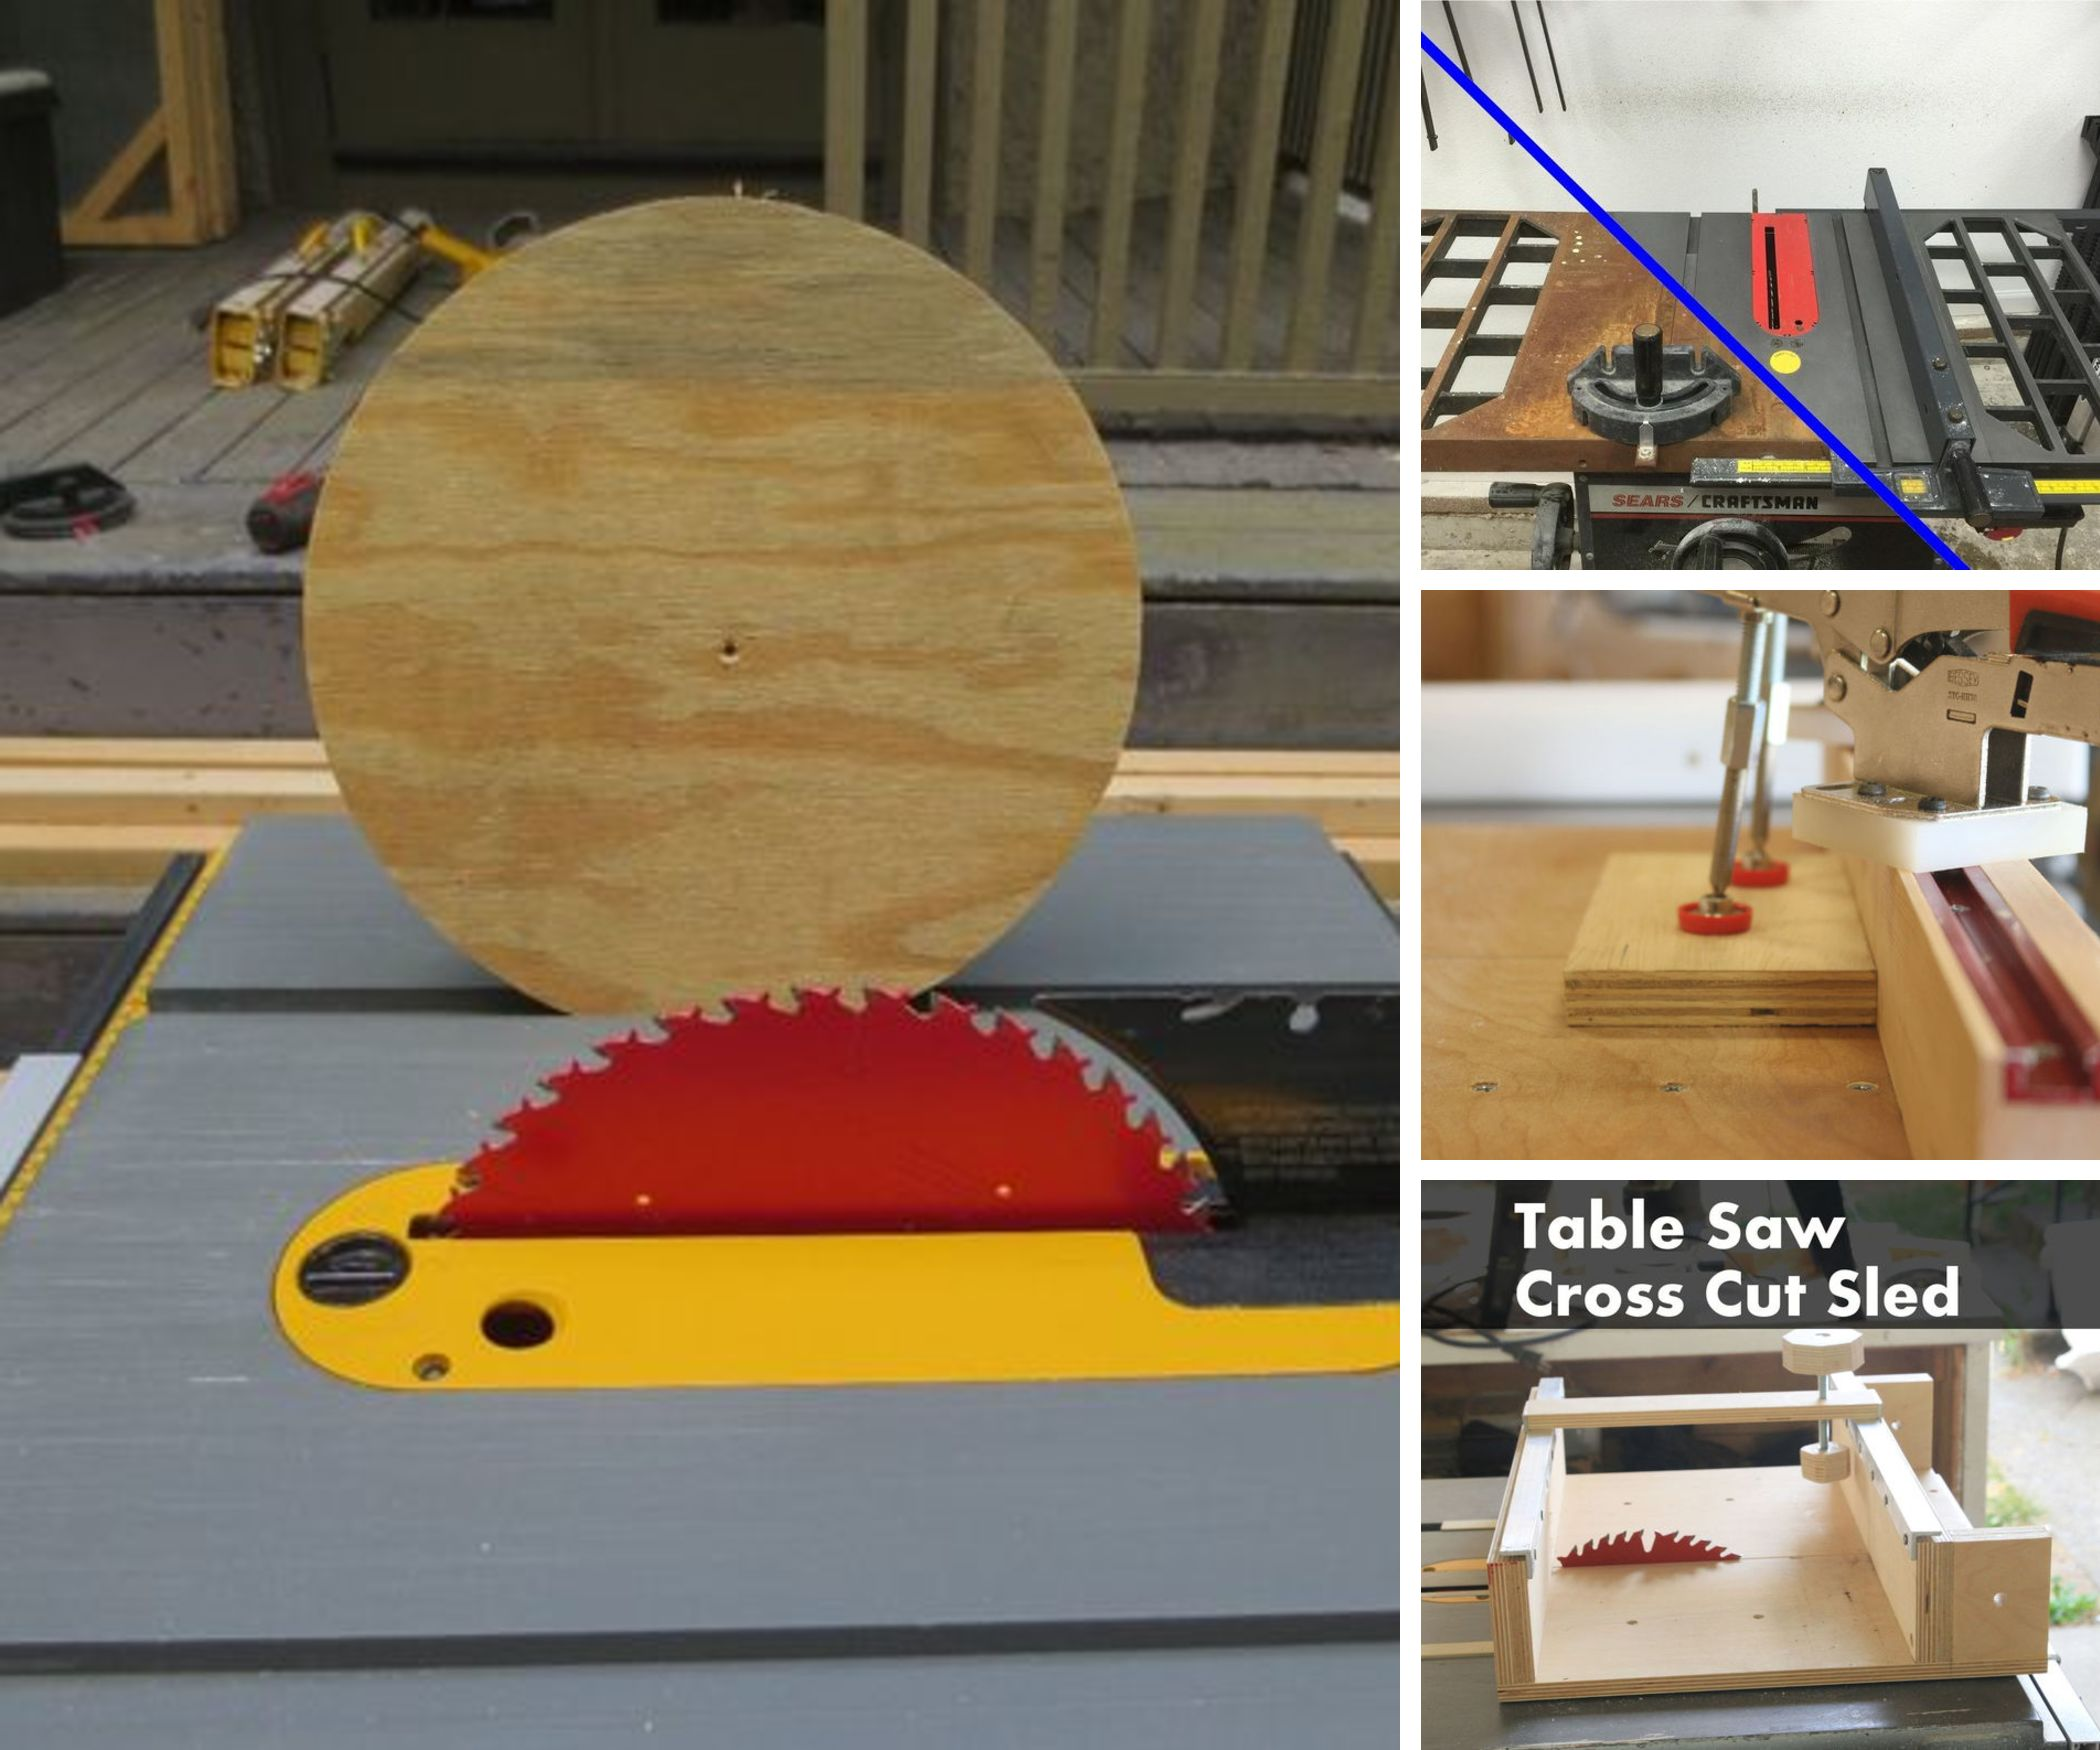 15 Genius Table Saw Mods